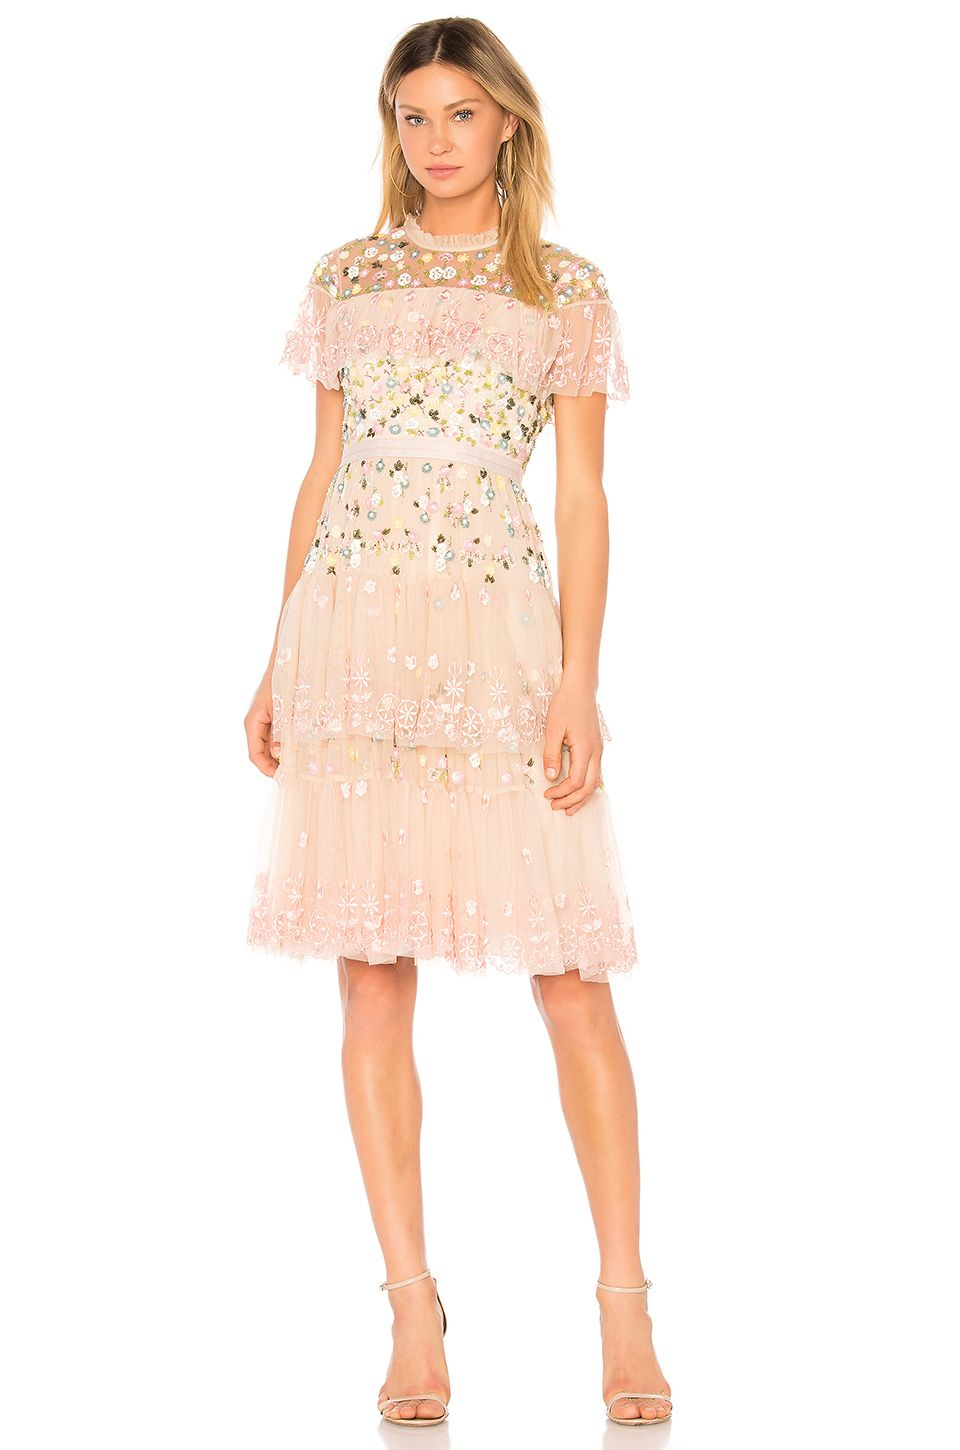 22 Chic Spring Wedding Guest Dresses - What